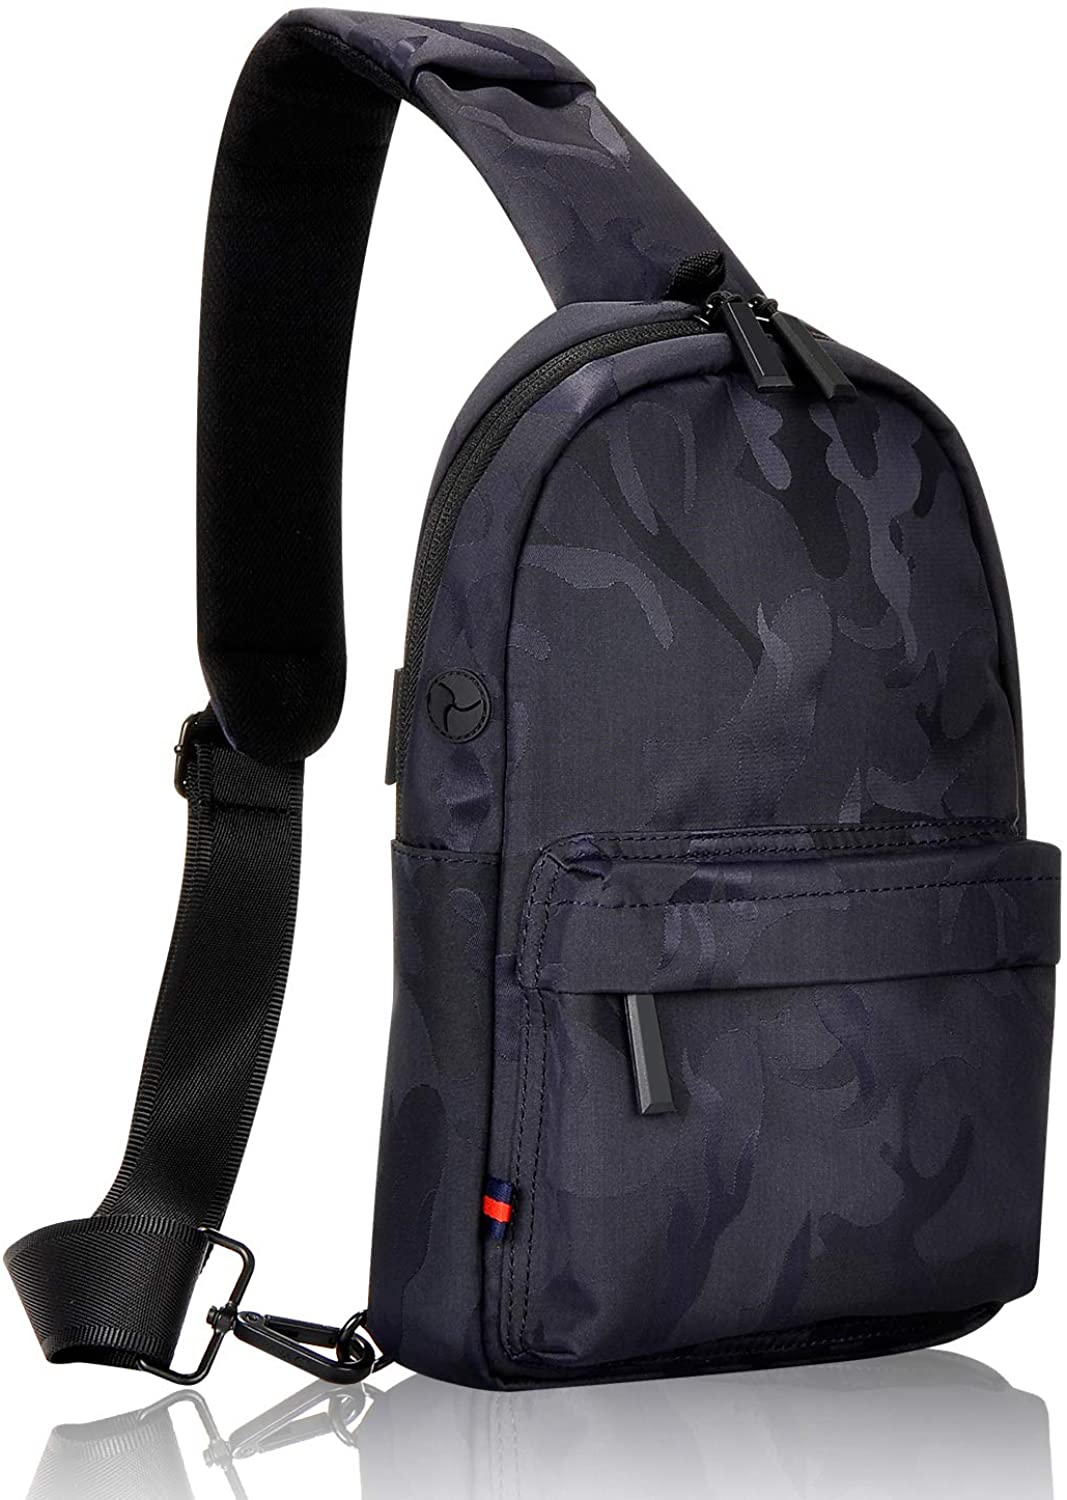 EXCPDT Sling Bag, Crossbody Backpack for Man Traveling Running Hiking Cycling